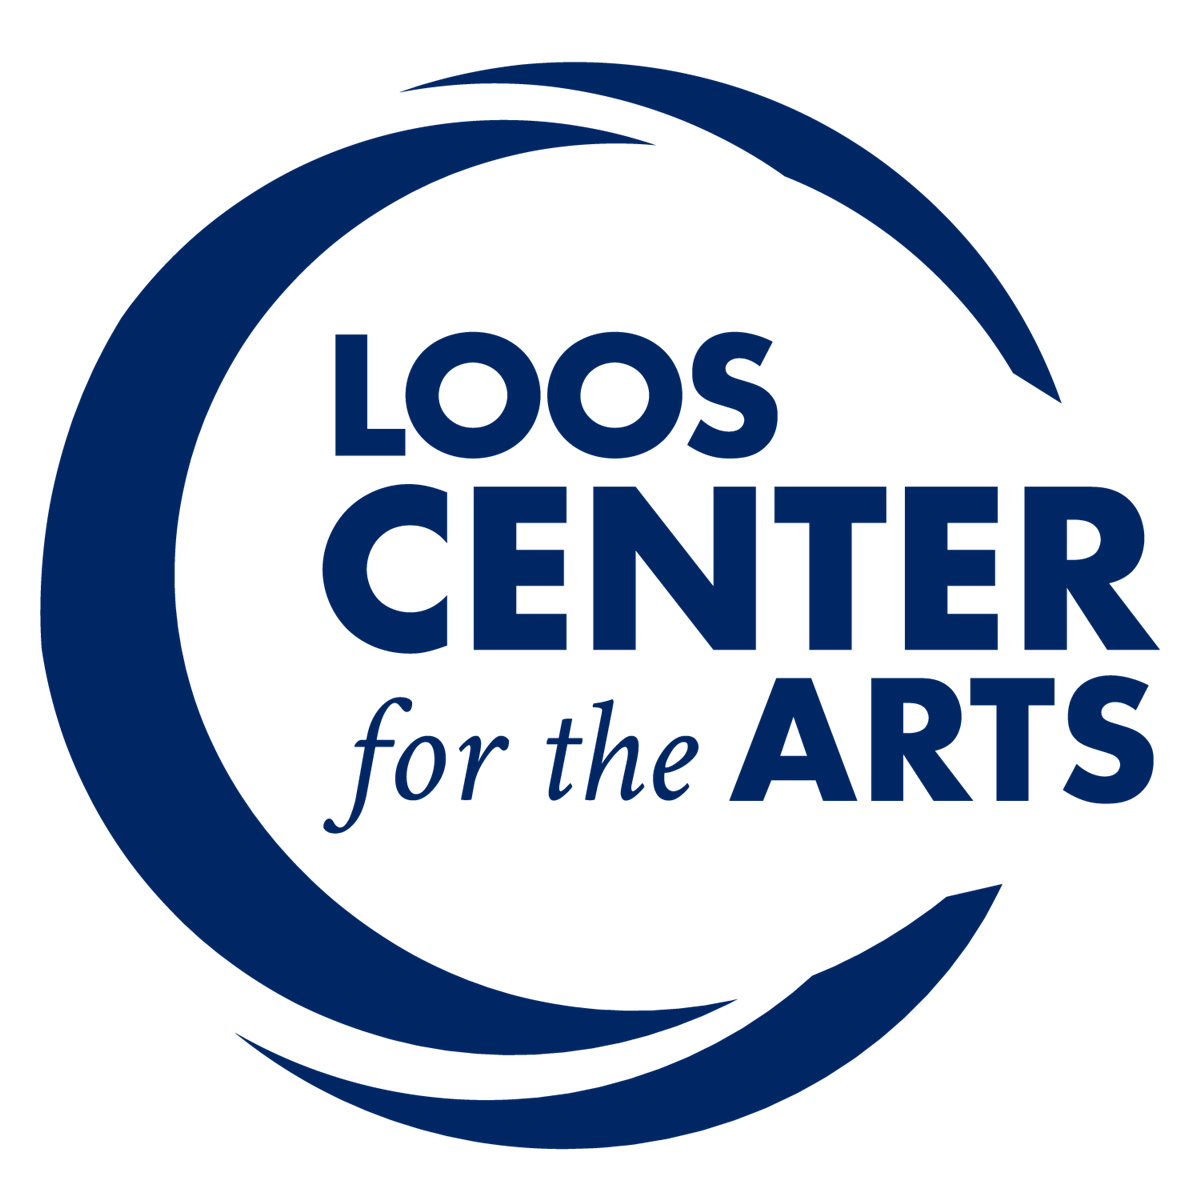 Loos Center for the Arts Logo